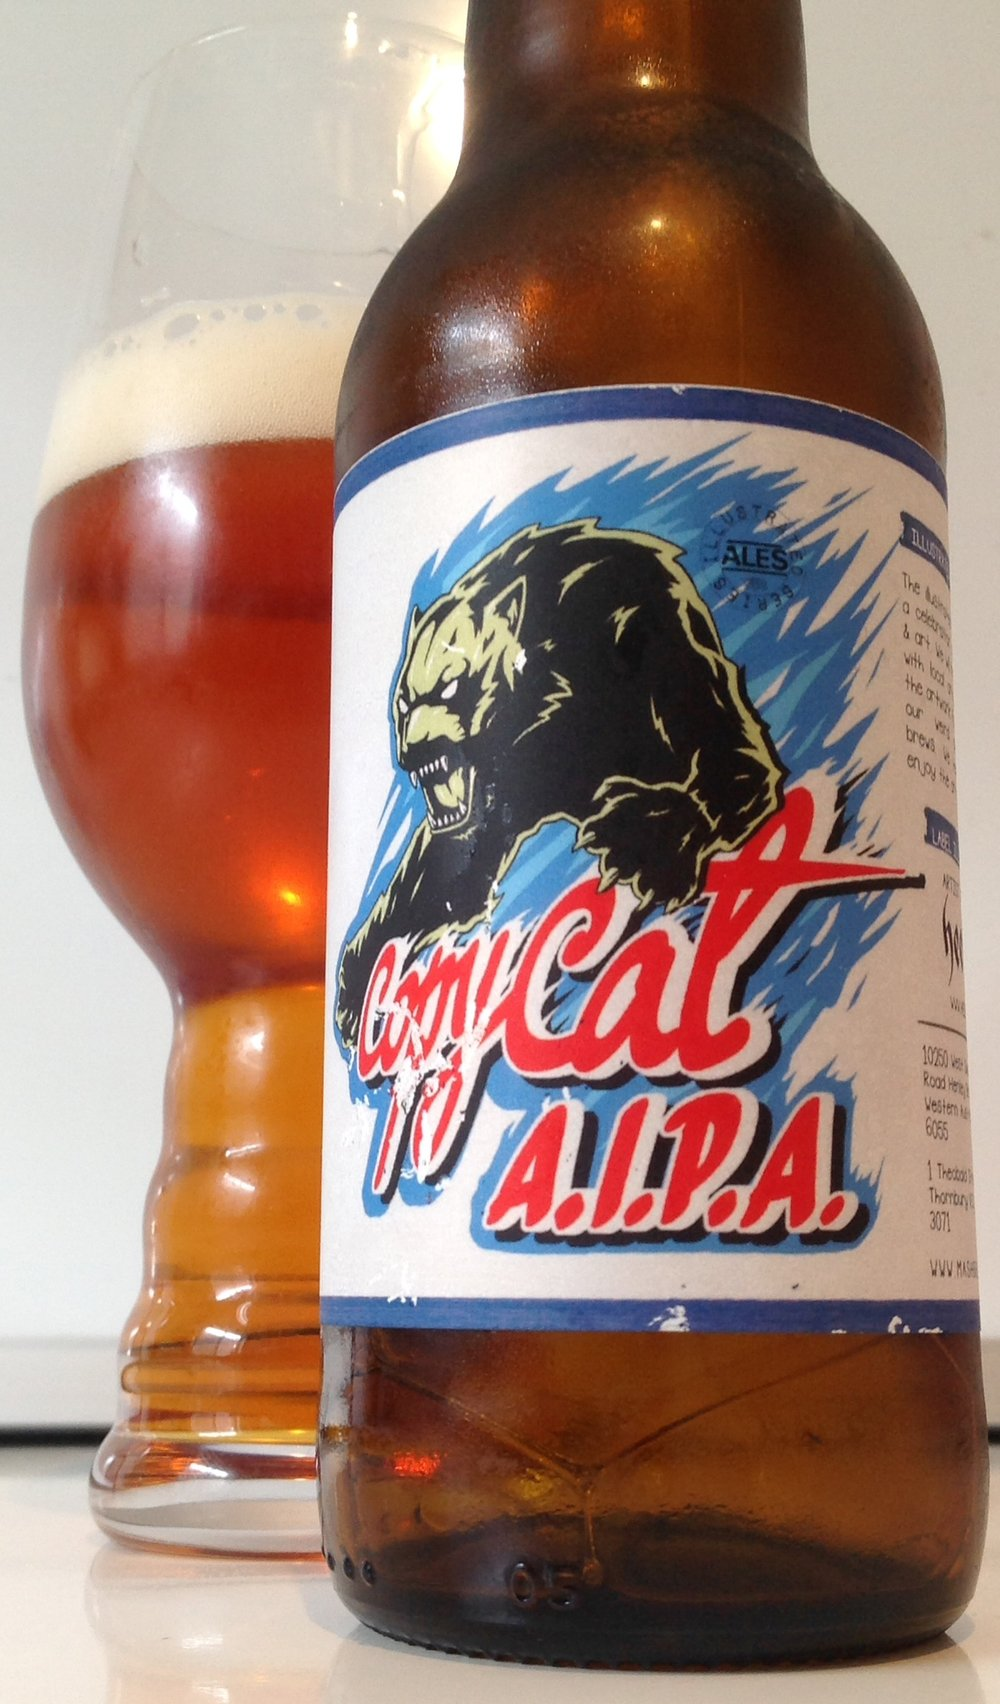 Mash Brewing's Copy Cat AIPA